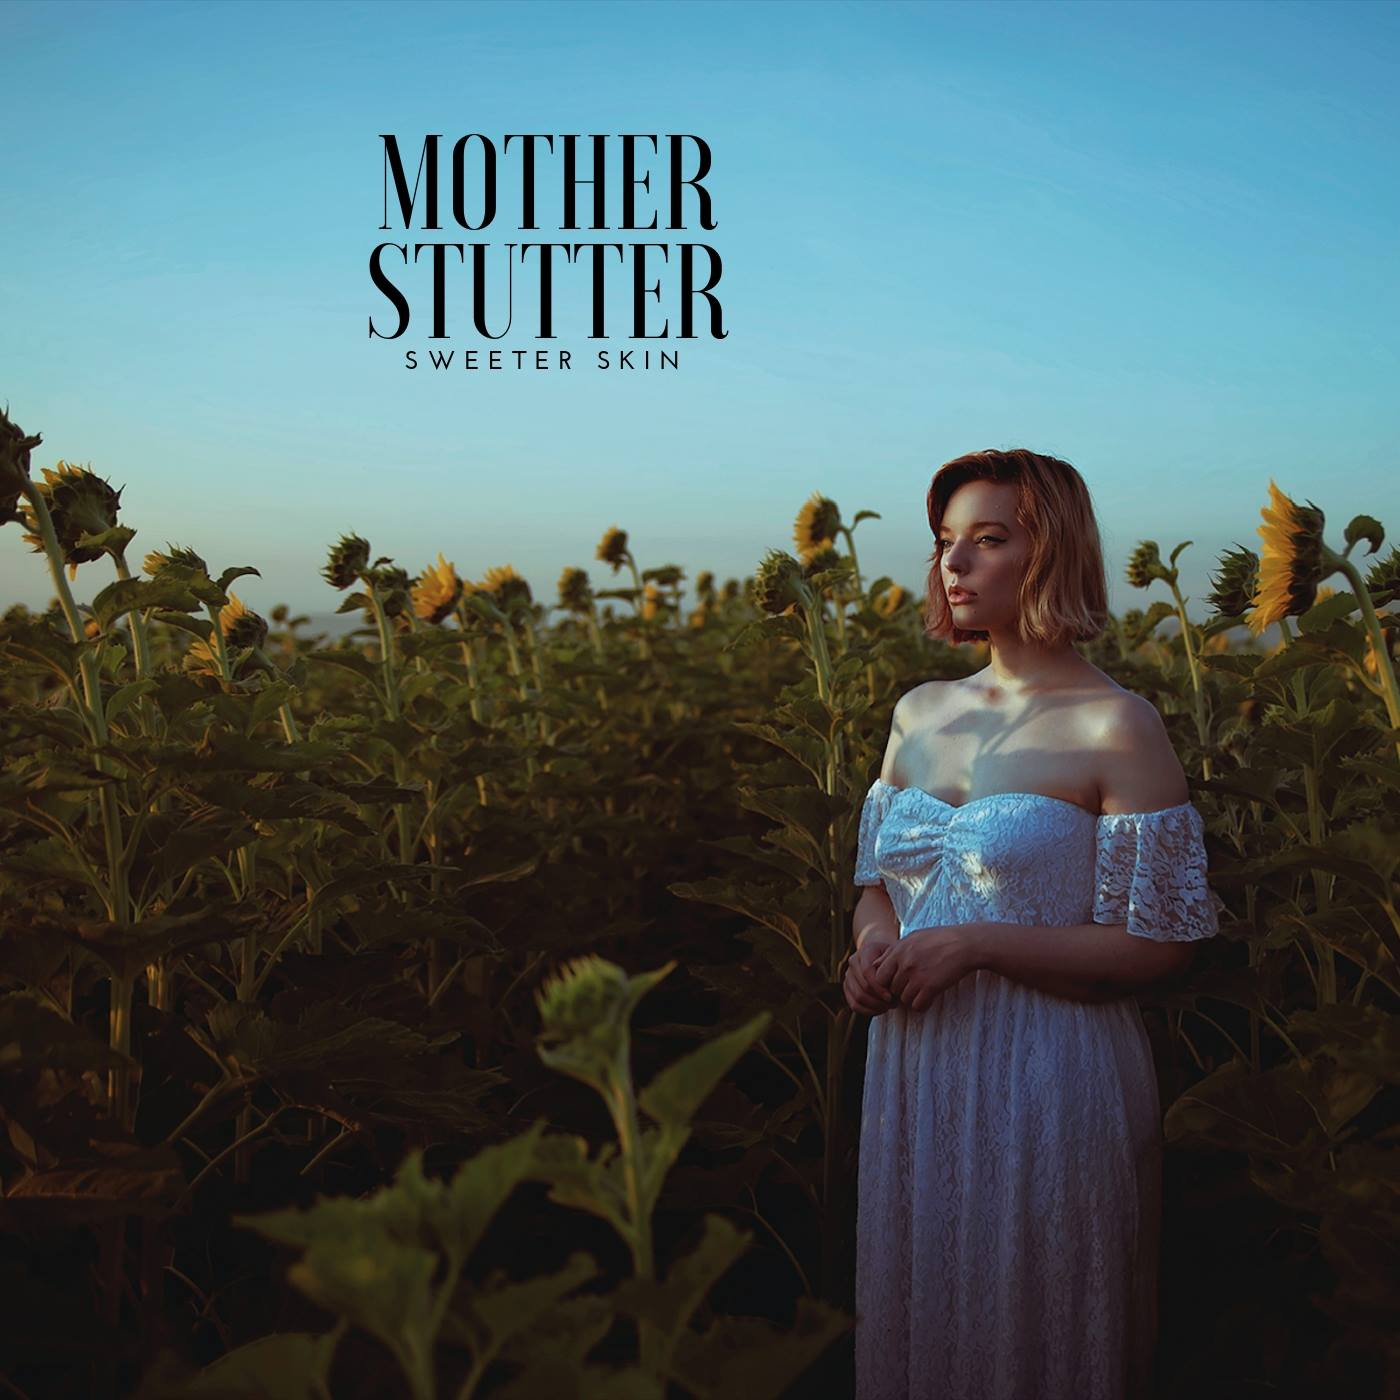 Cover art of Mother Stutter's newest single. Photo by Kimberly N. Photography